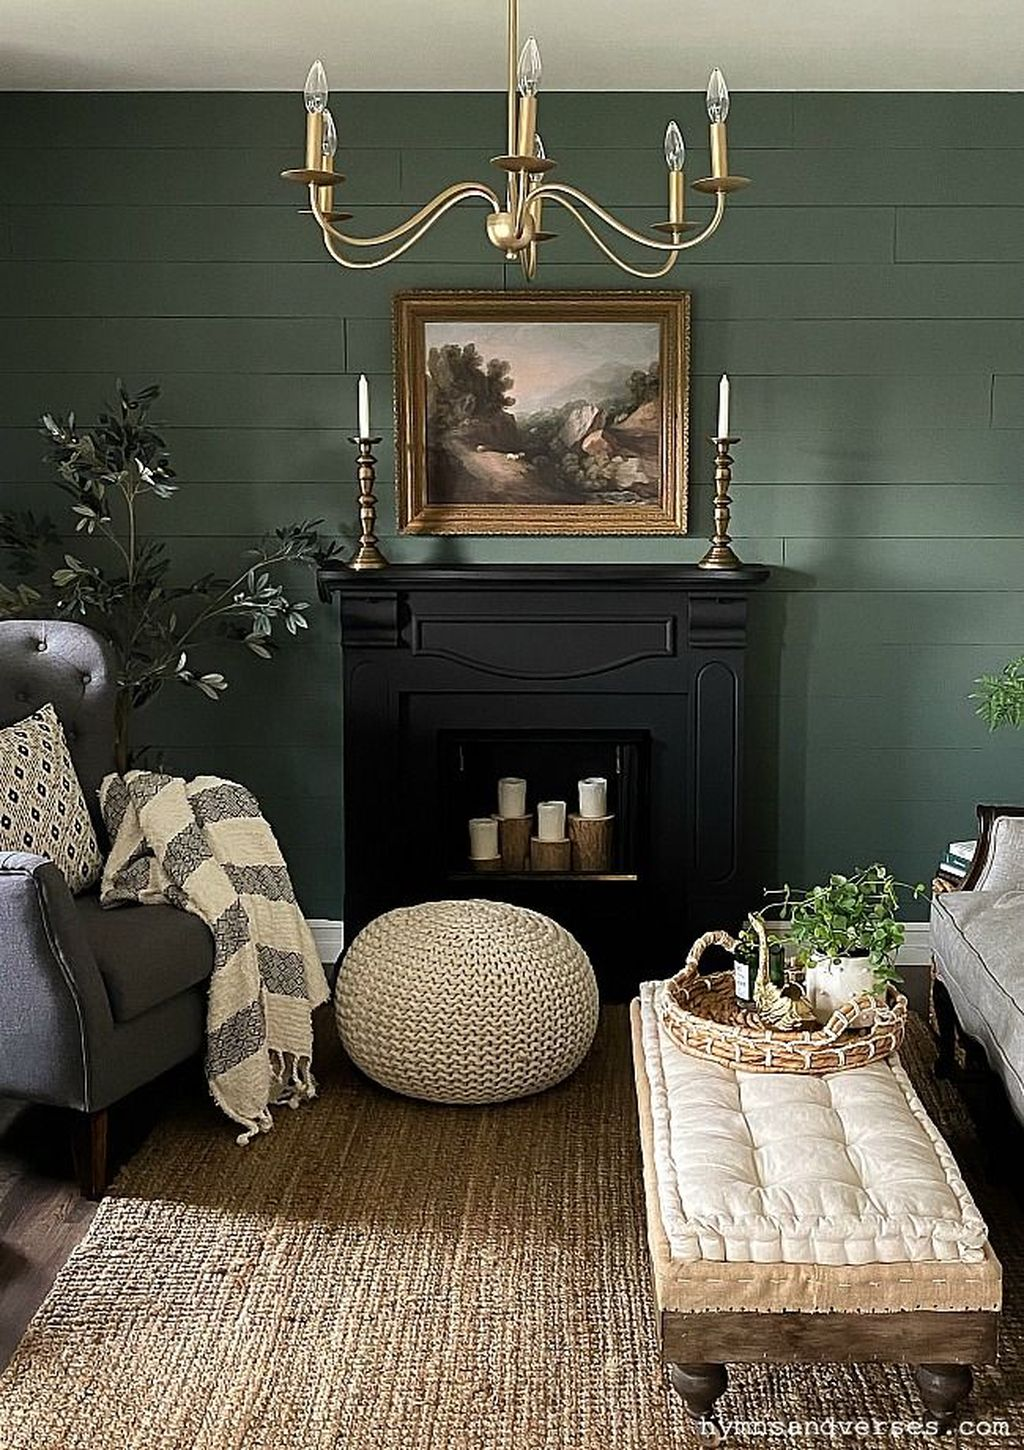 Brilliant Accent Wall Ideas For Living Room 21